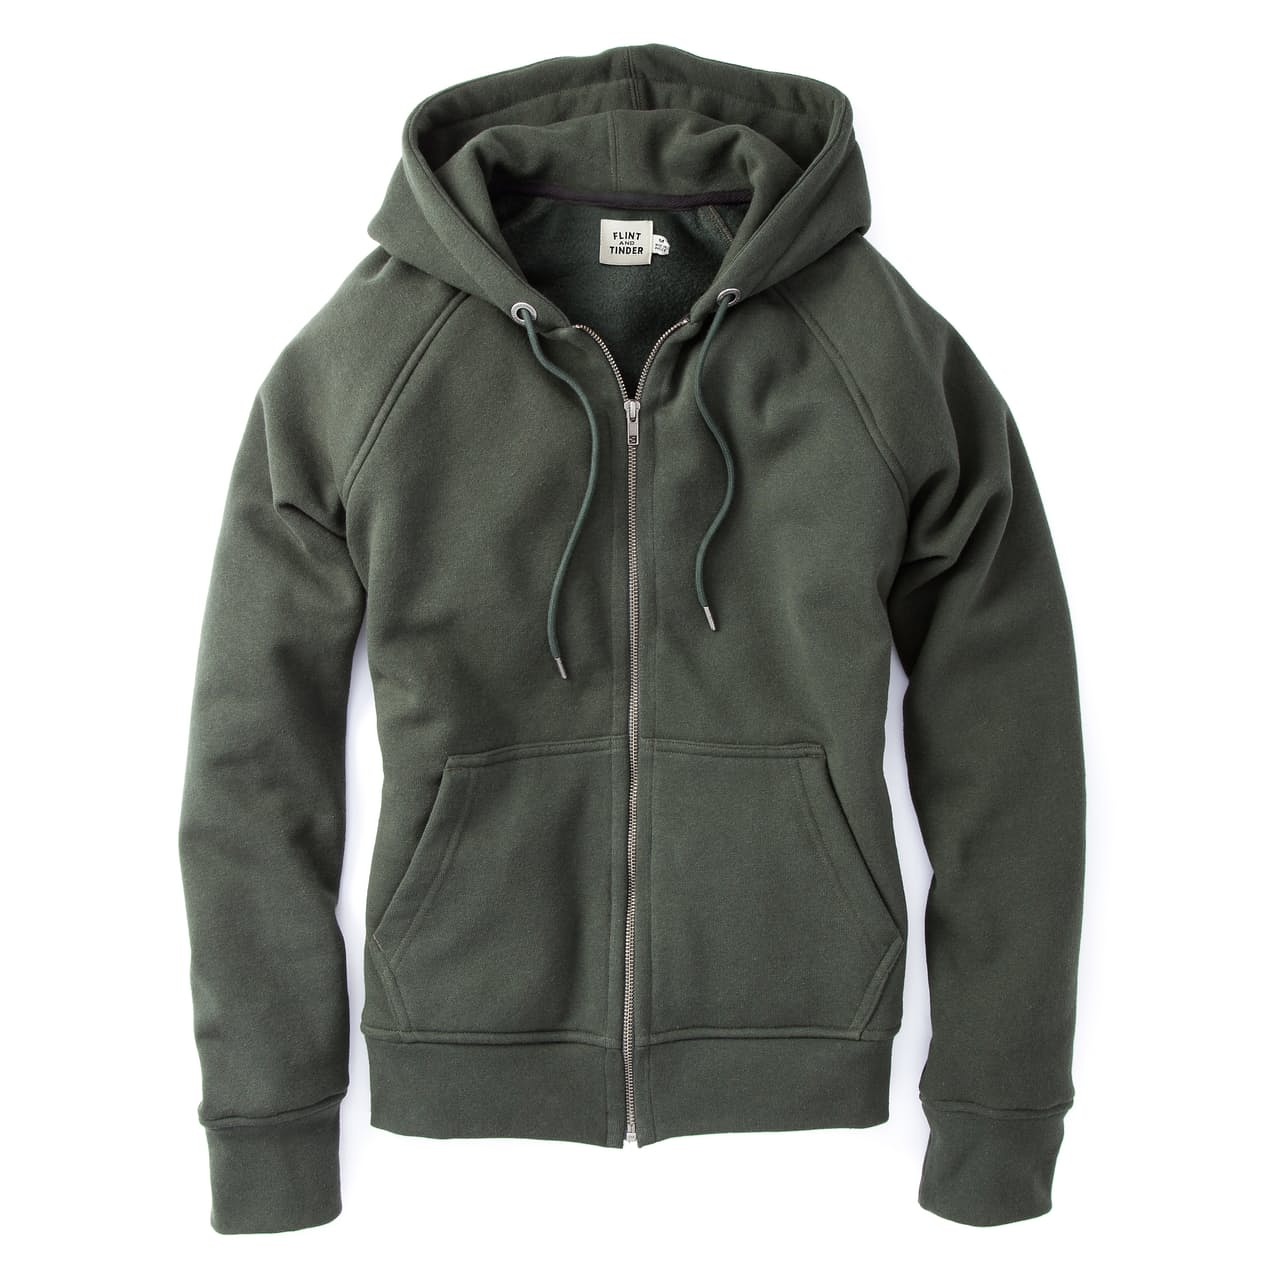 Green Flint and Tinder 10-year hoodie